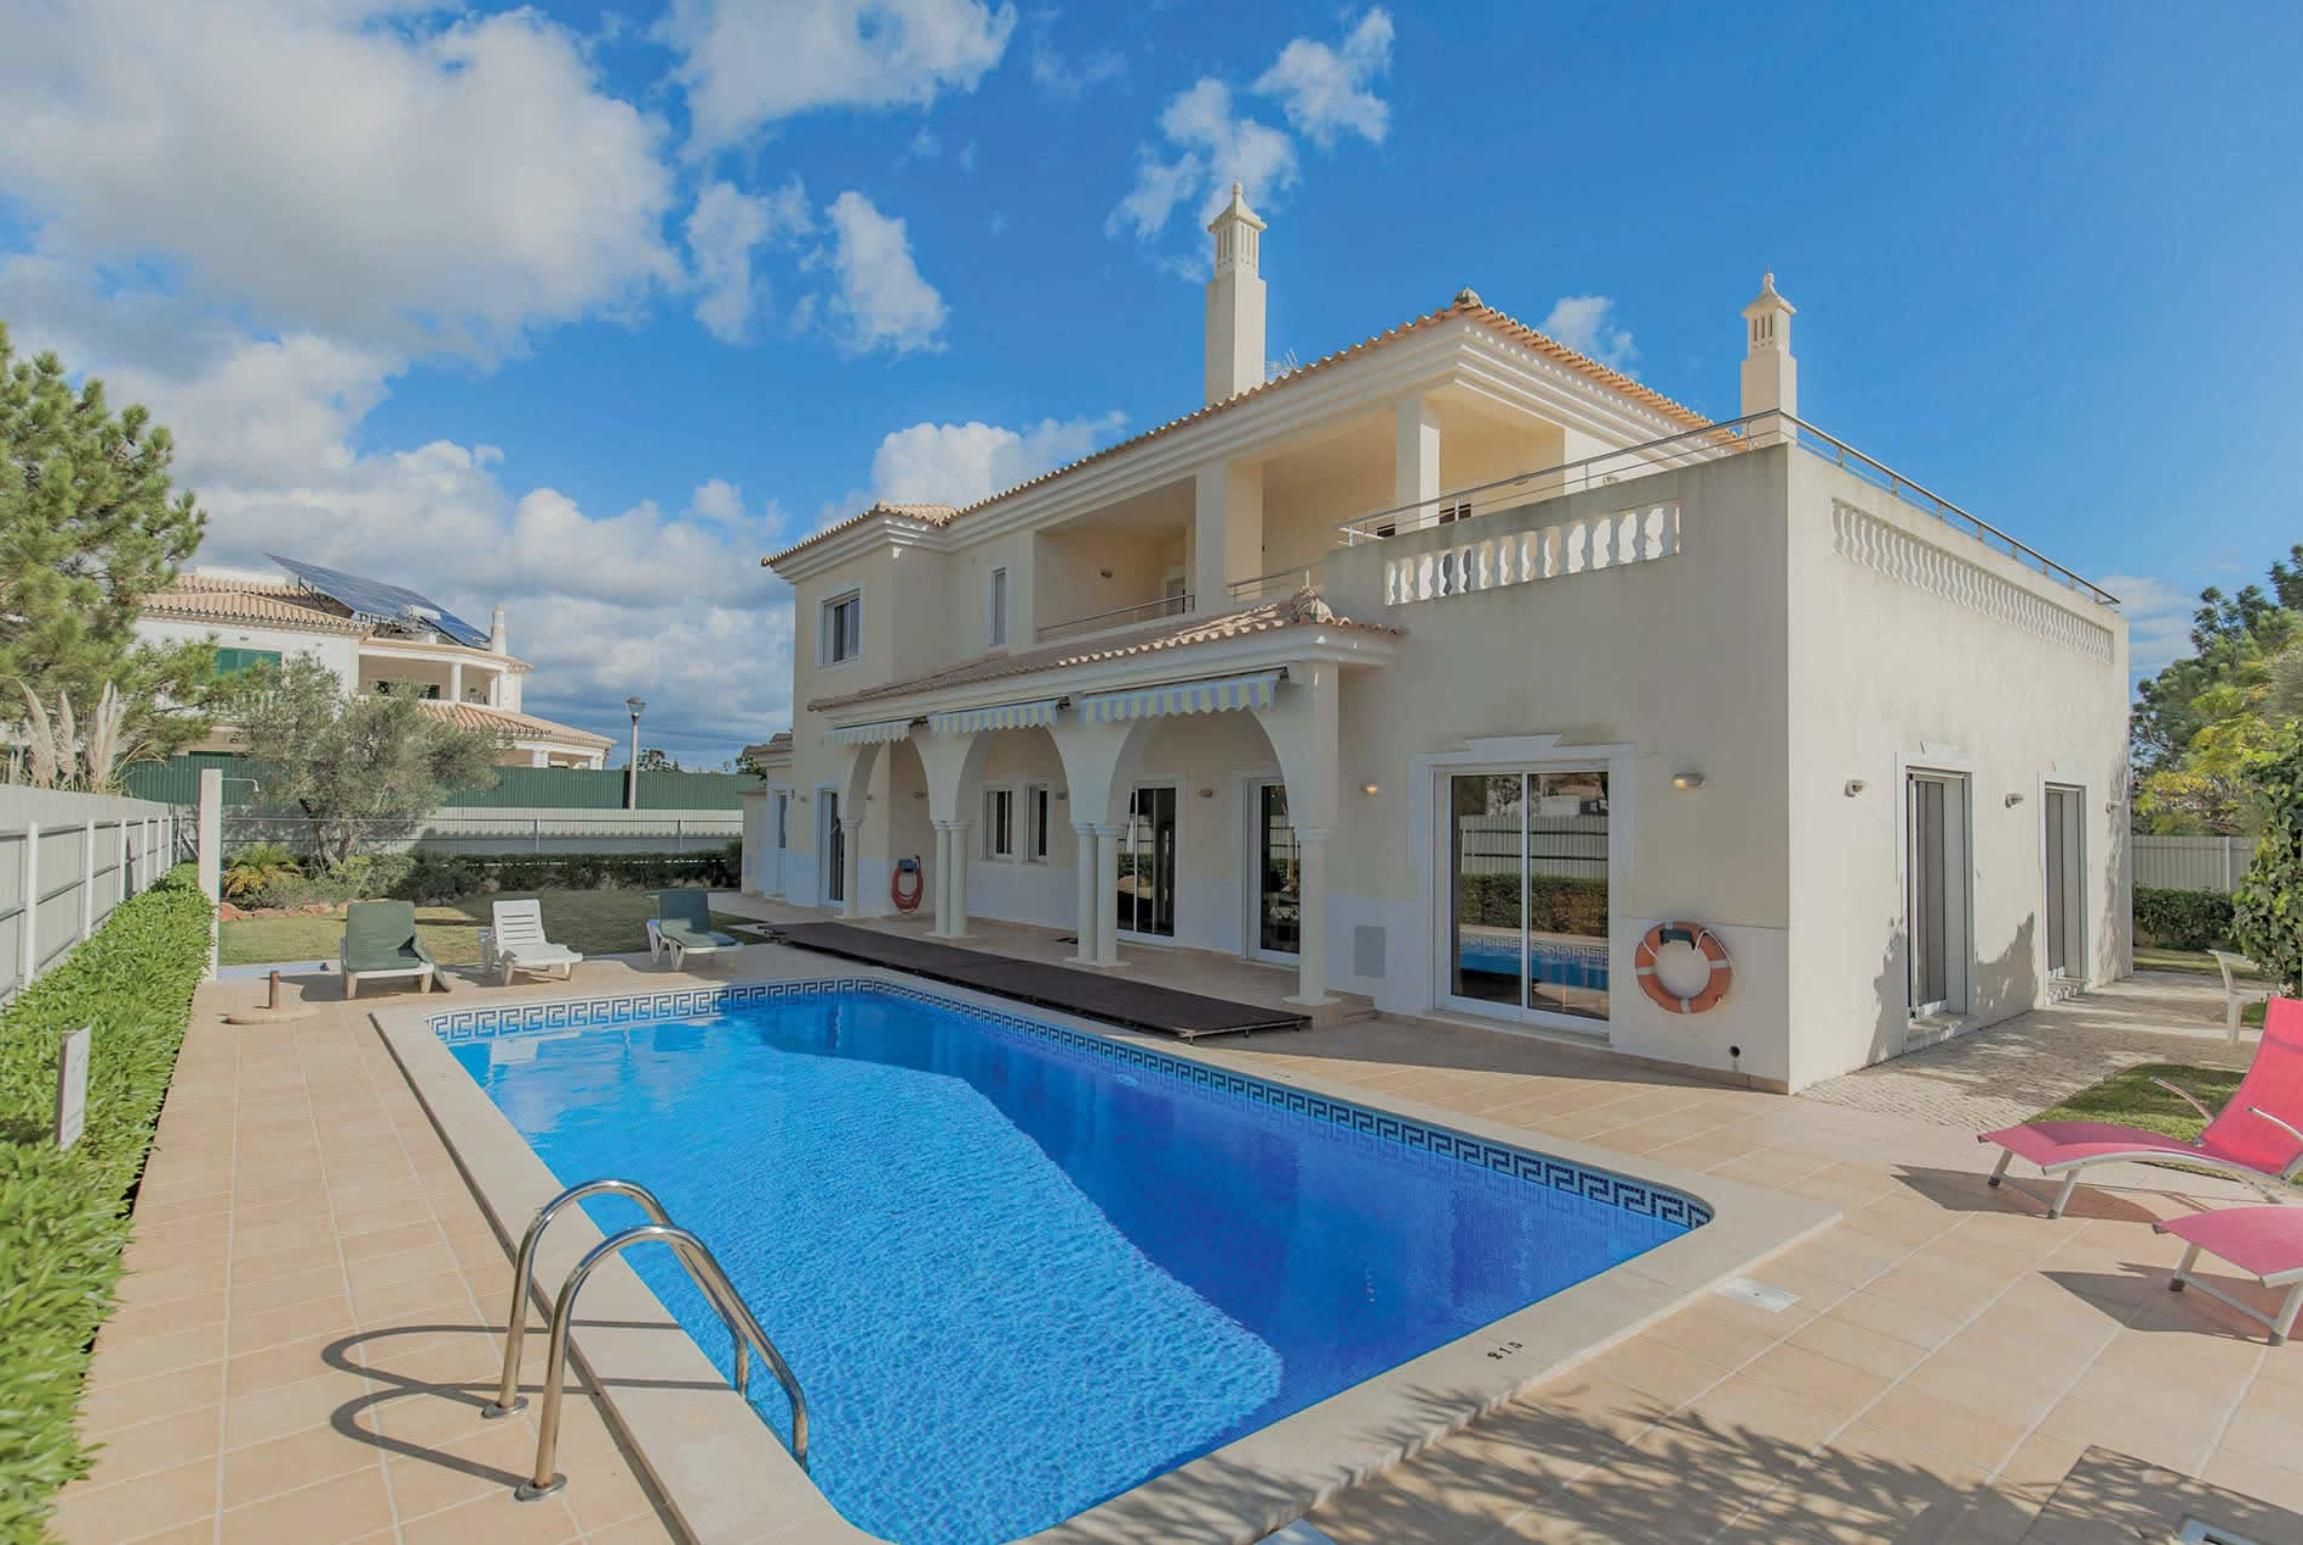 Read more about Real Sol villa